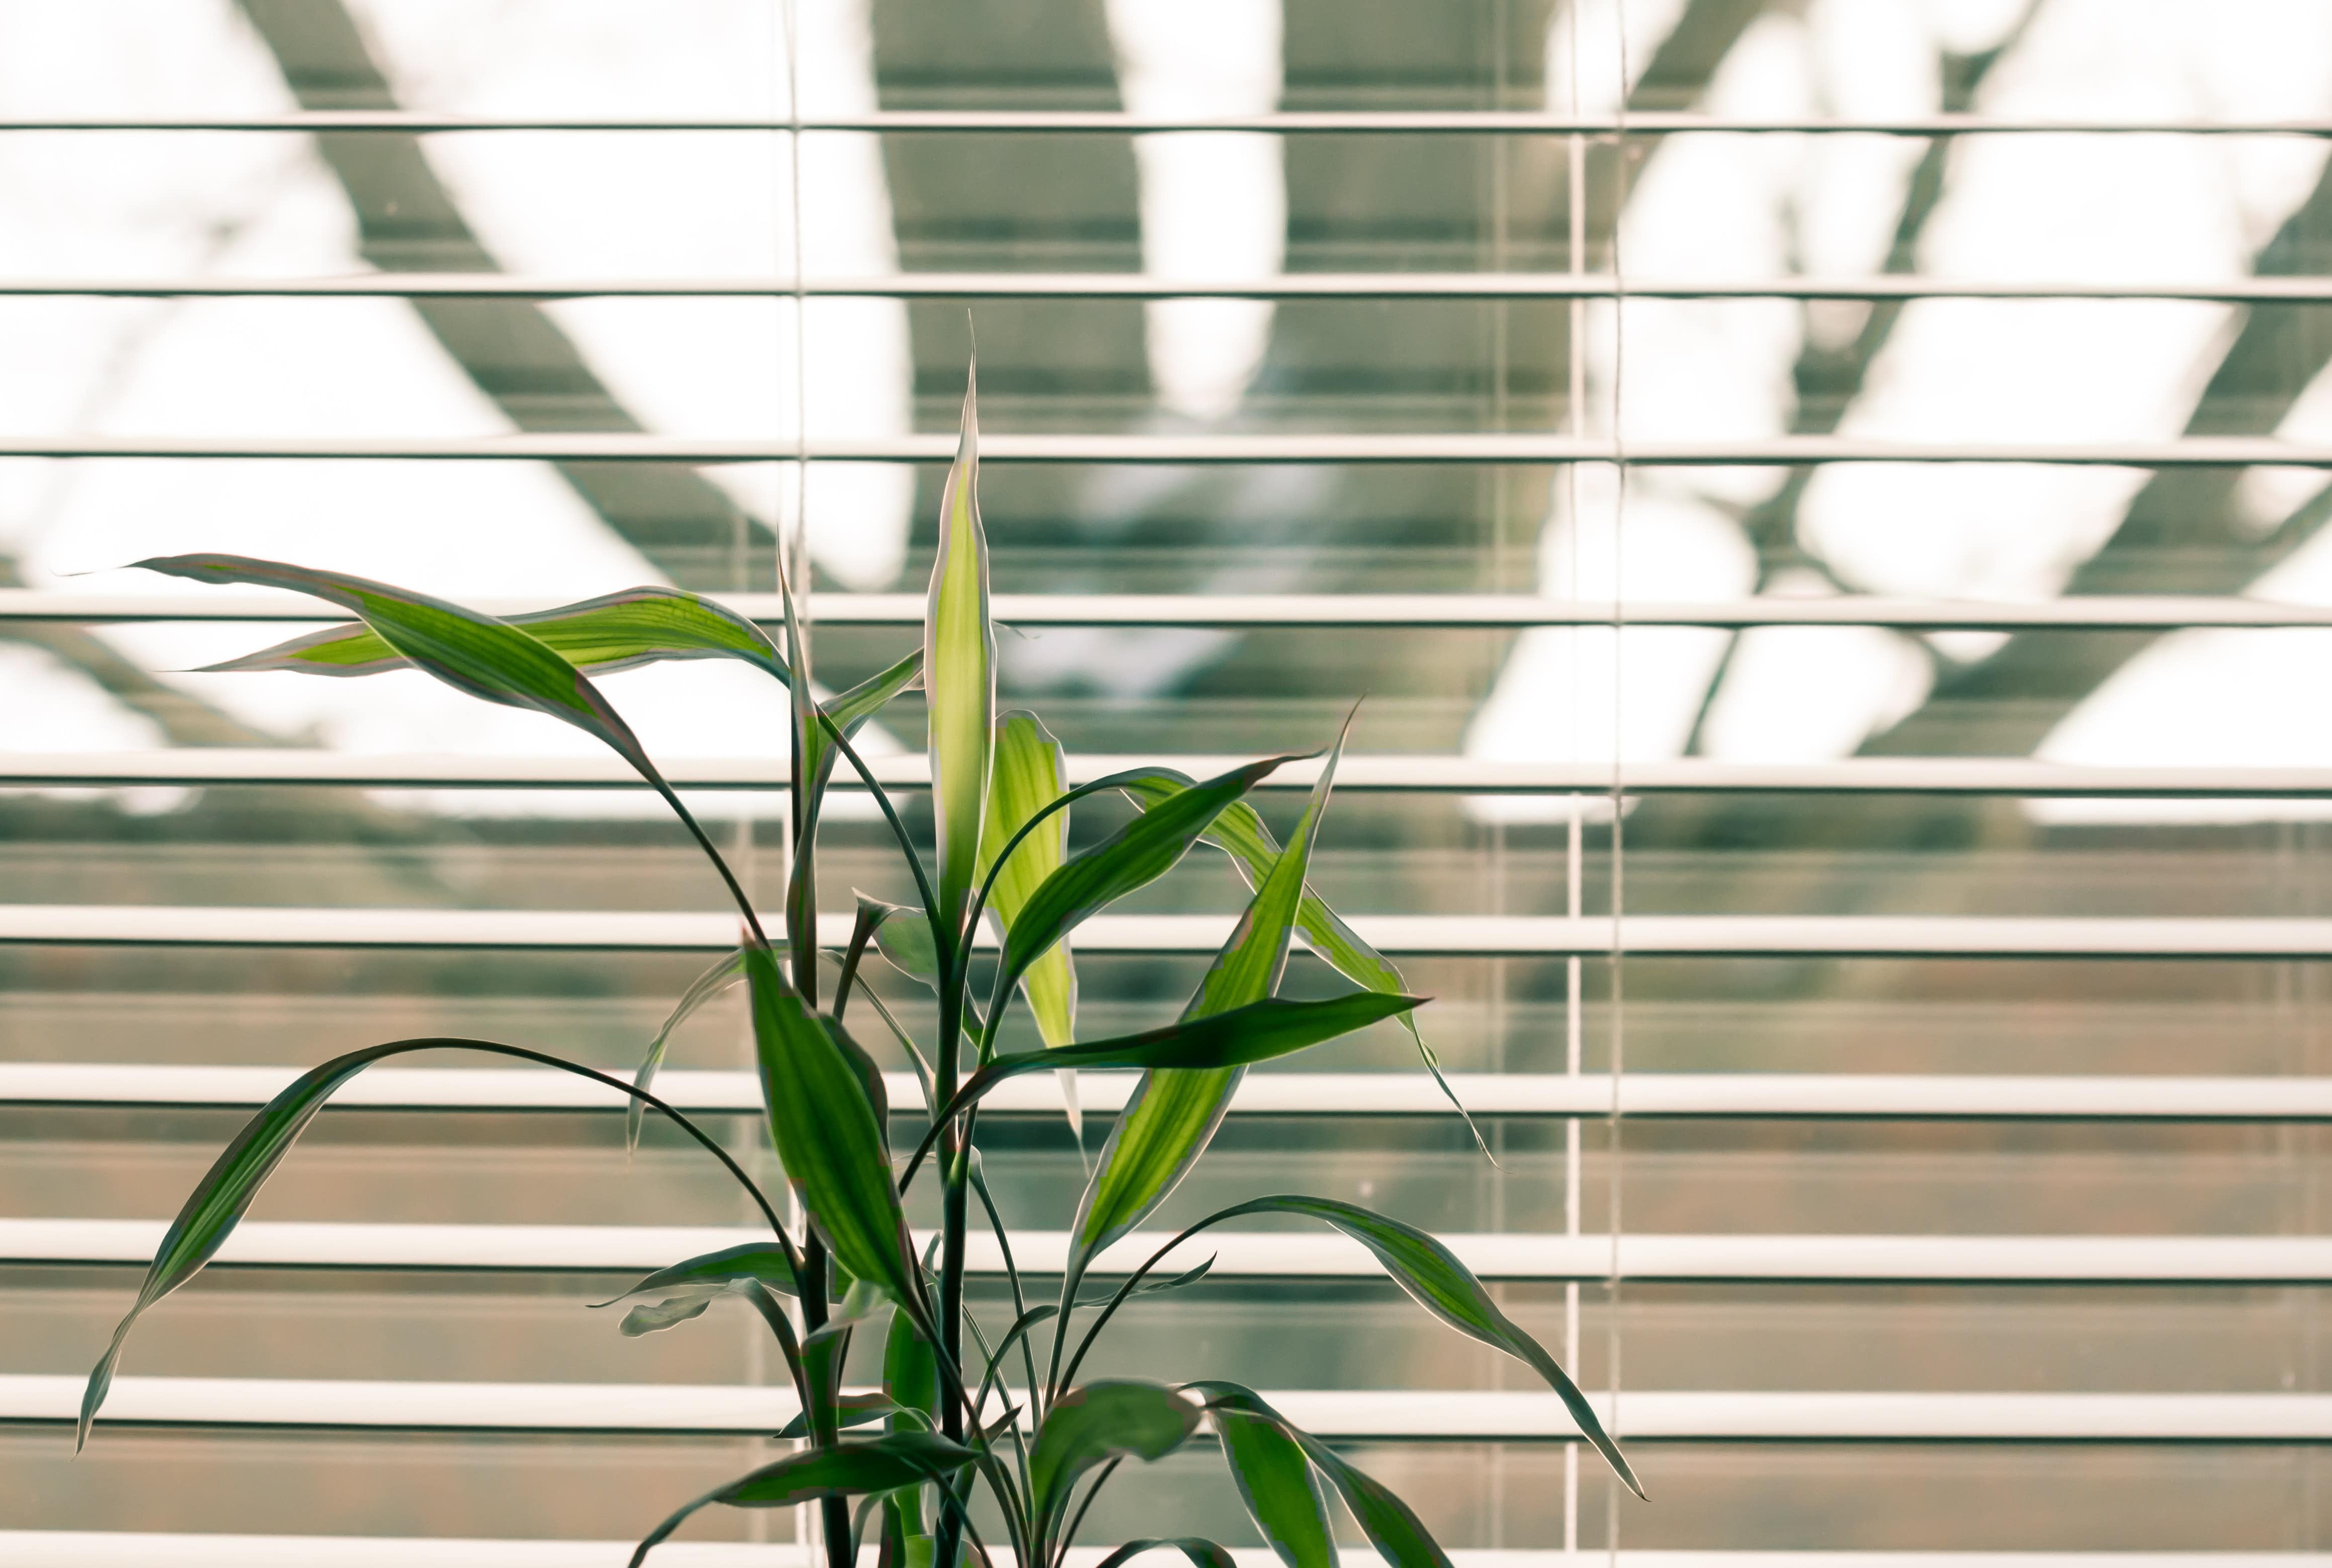 image of plant in front of dusty blinds